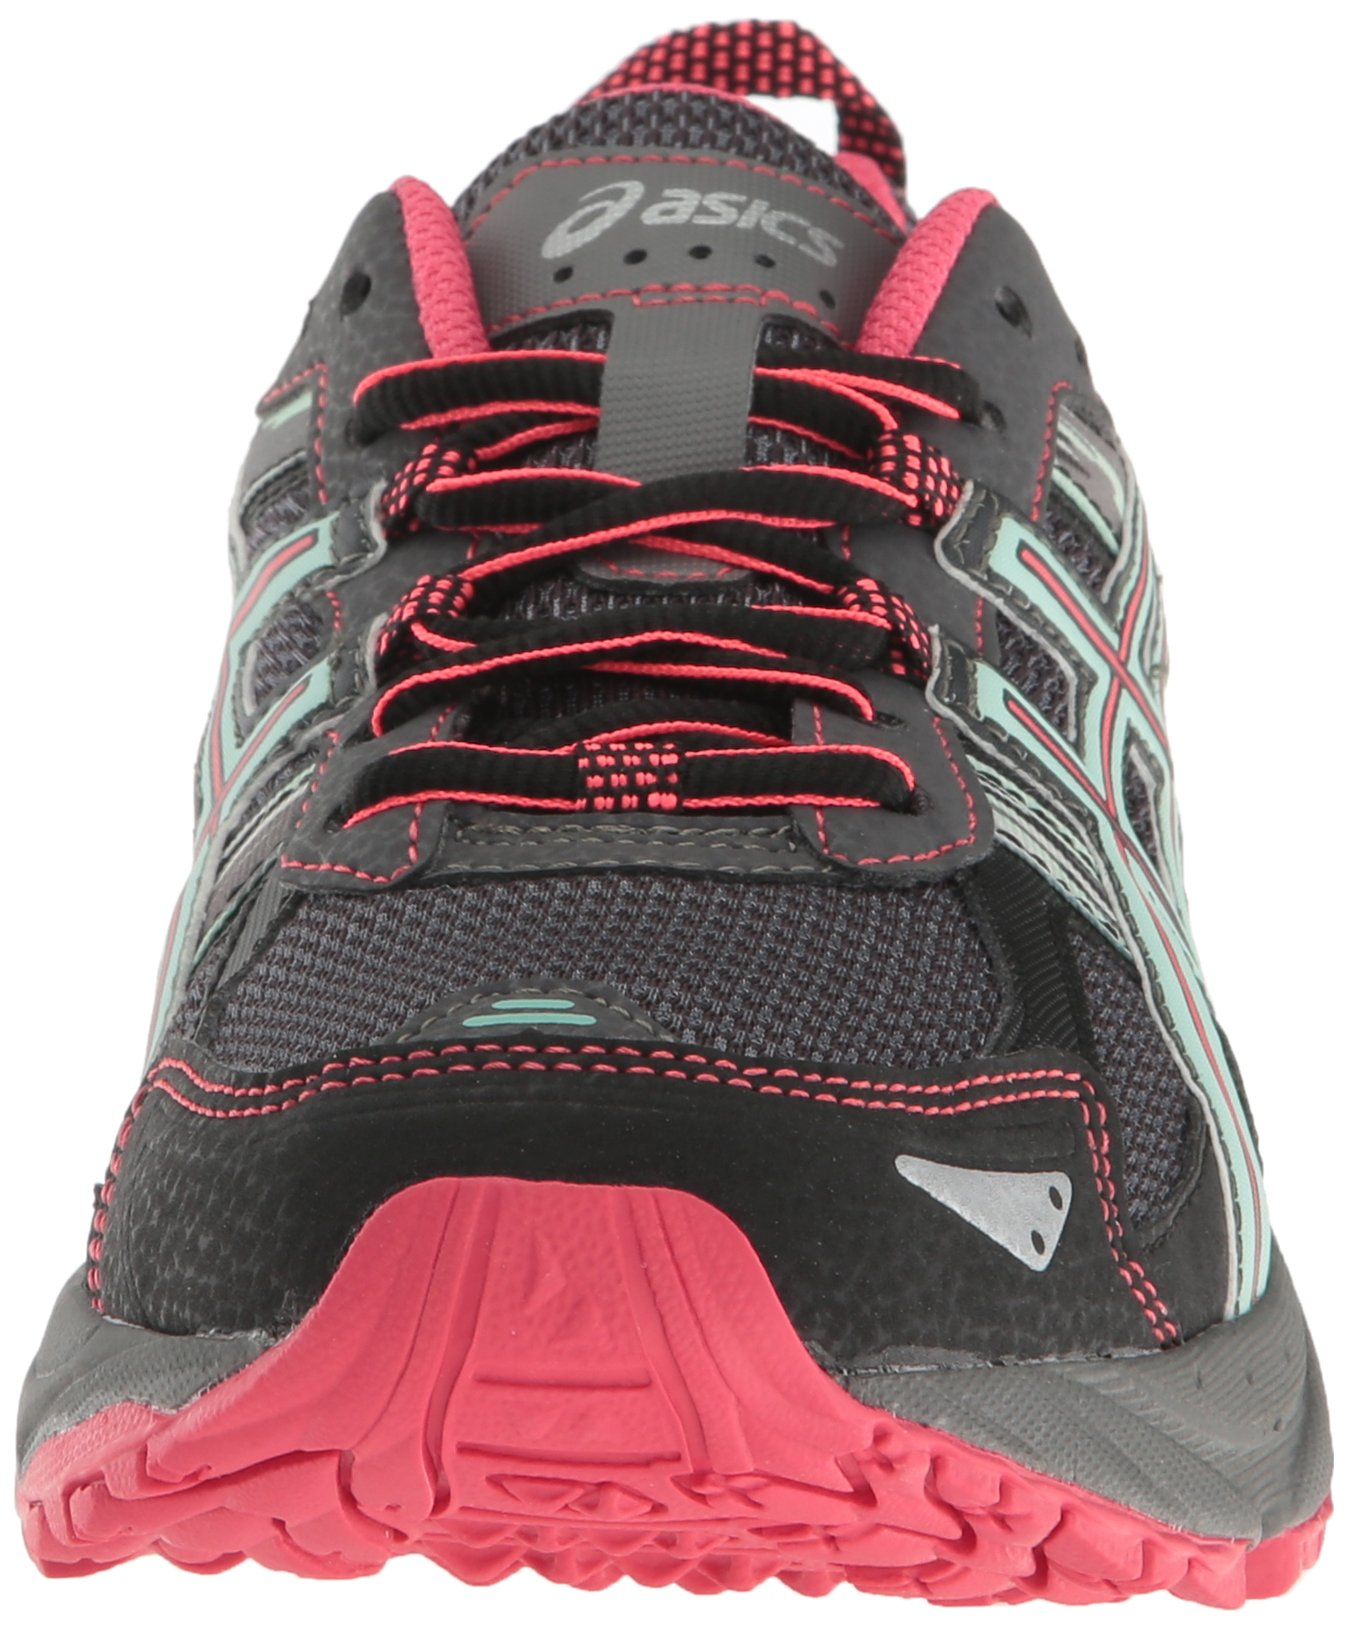 ASICS Women's Gel-Venture 5 Trail Runner, Carbon/Diva Pink/Bay, 9 M US by ASICS (Image #4)